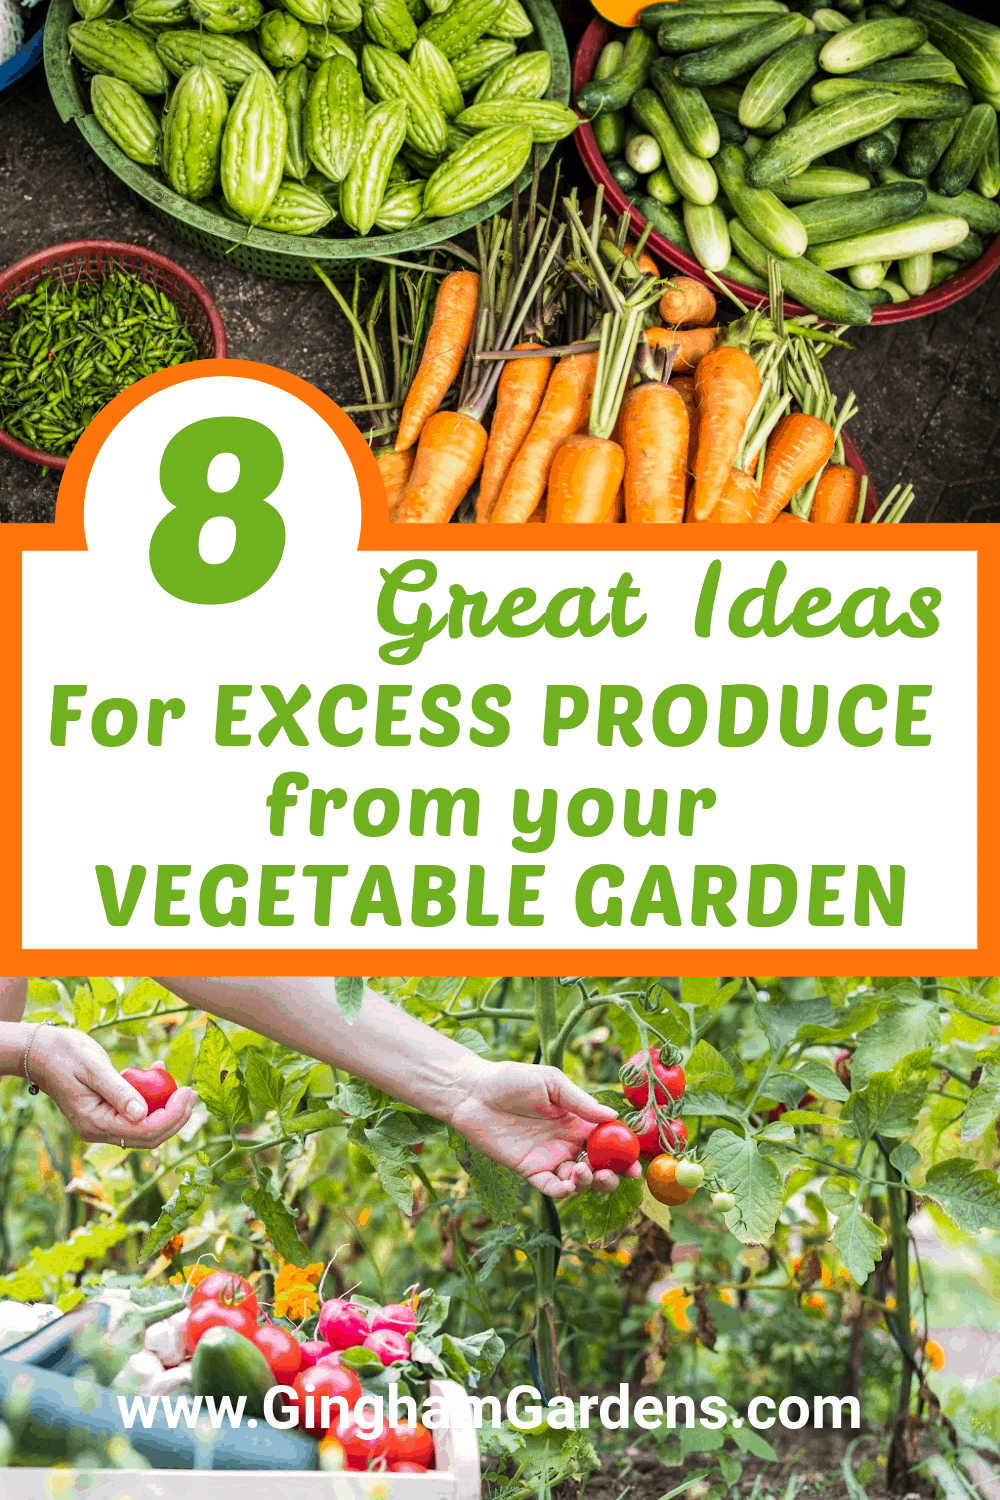 Image of garden vegetables with test overlay - 8 great ideas for Excess Produce from your vegetable garden